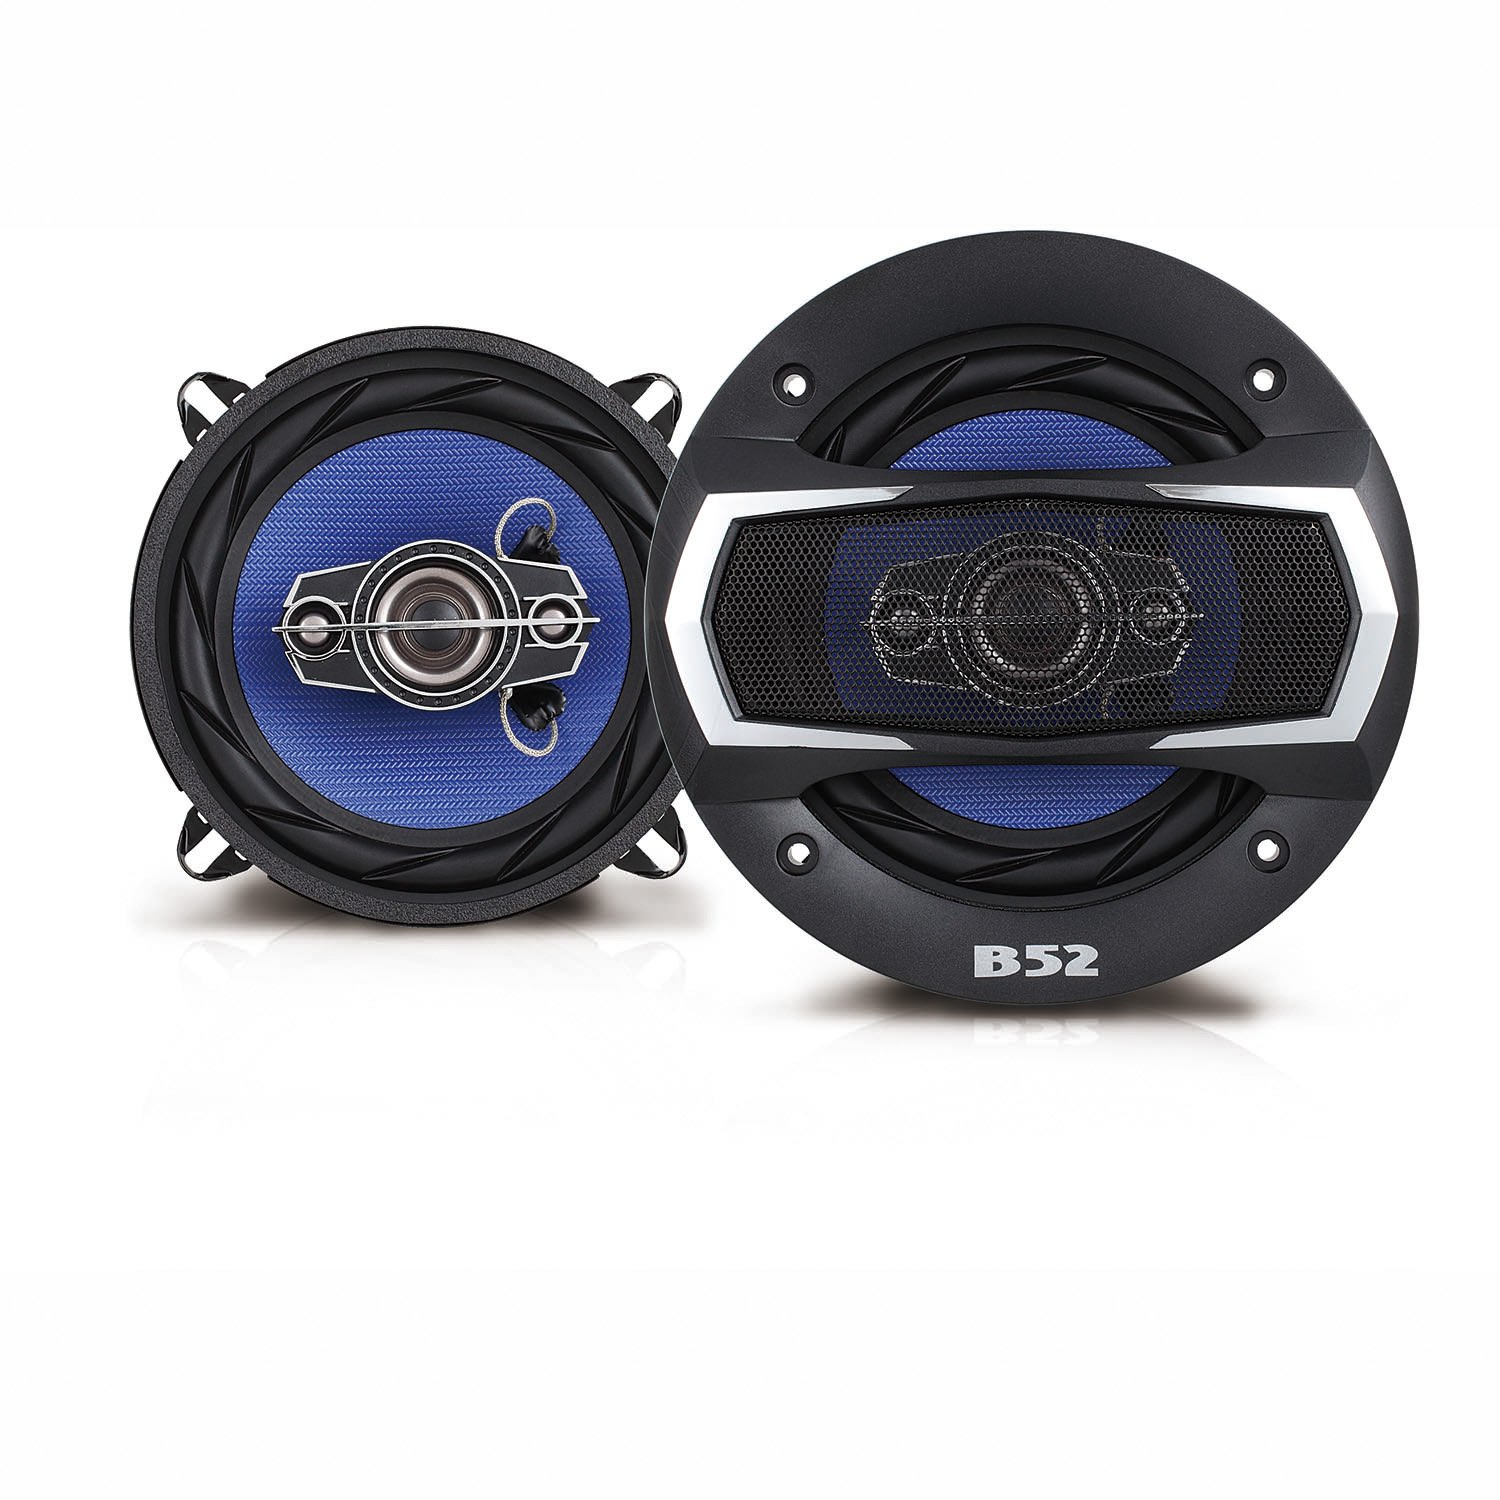 B52CarAudio WA-5162 4-Way Car Speaker 5'' Max Power (300W)